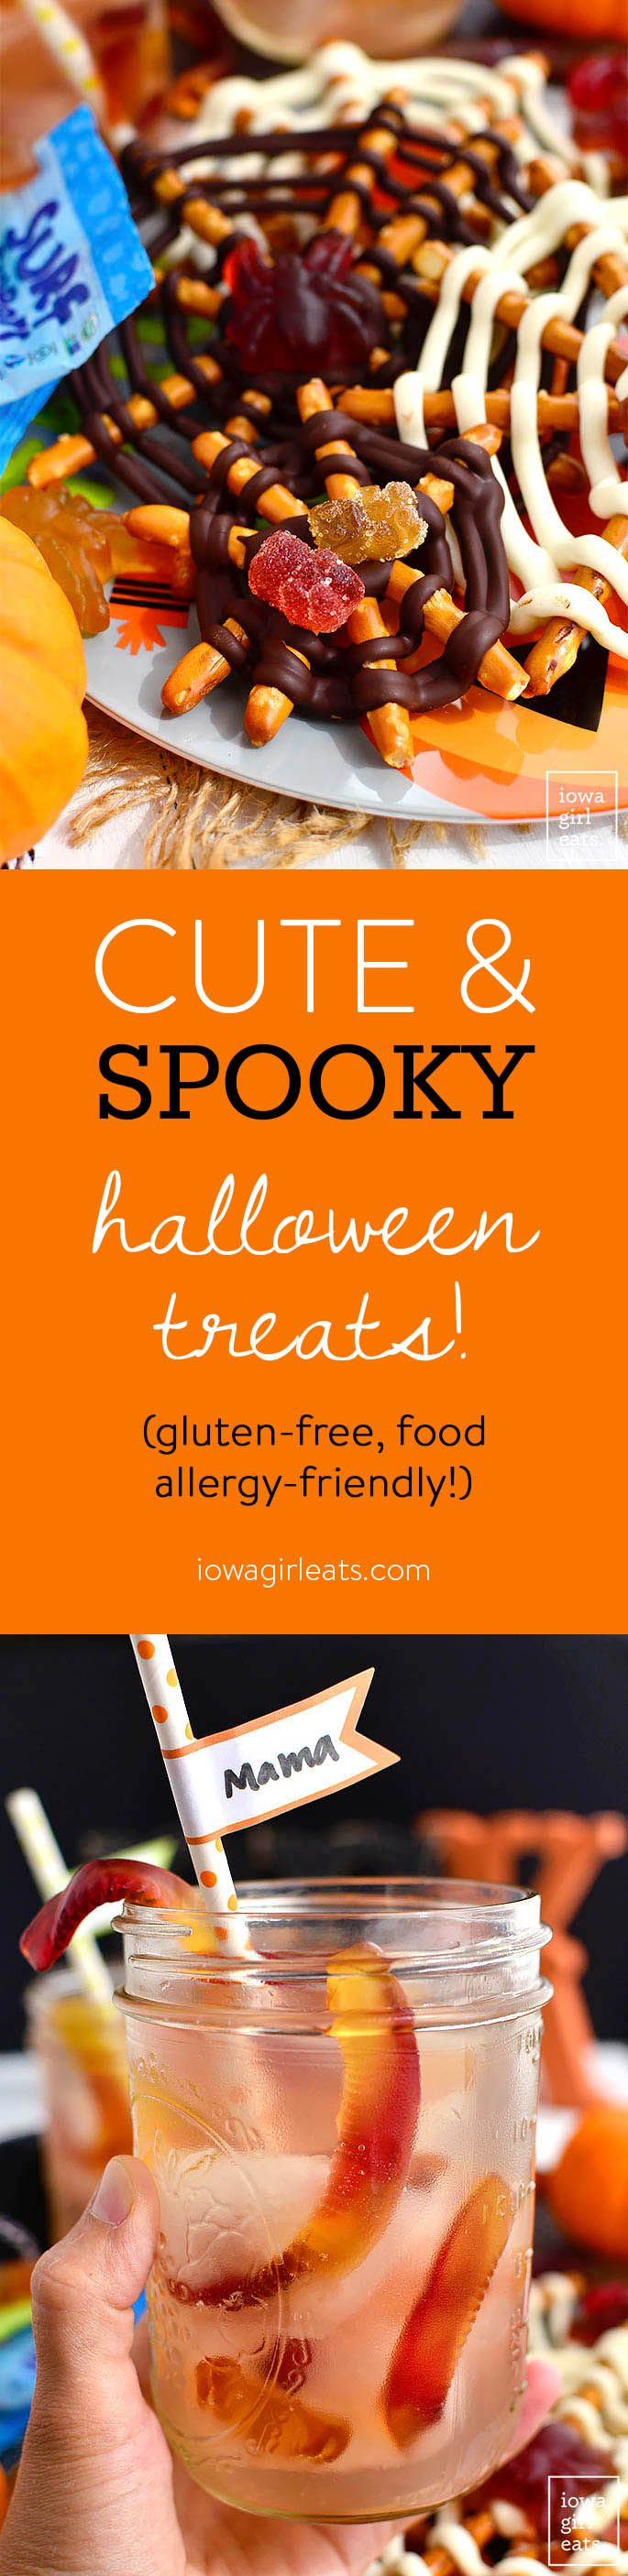 Two cute and creepy Halloween treats that are gluten-free and food allergy-friendly. Make for a Halloween party or as a fun activity with your kids! | iowagirleats.com